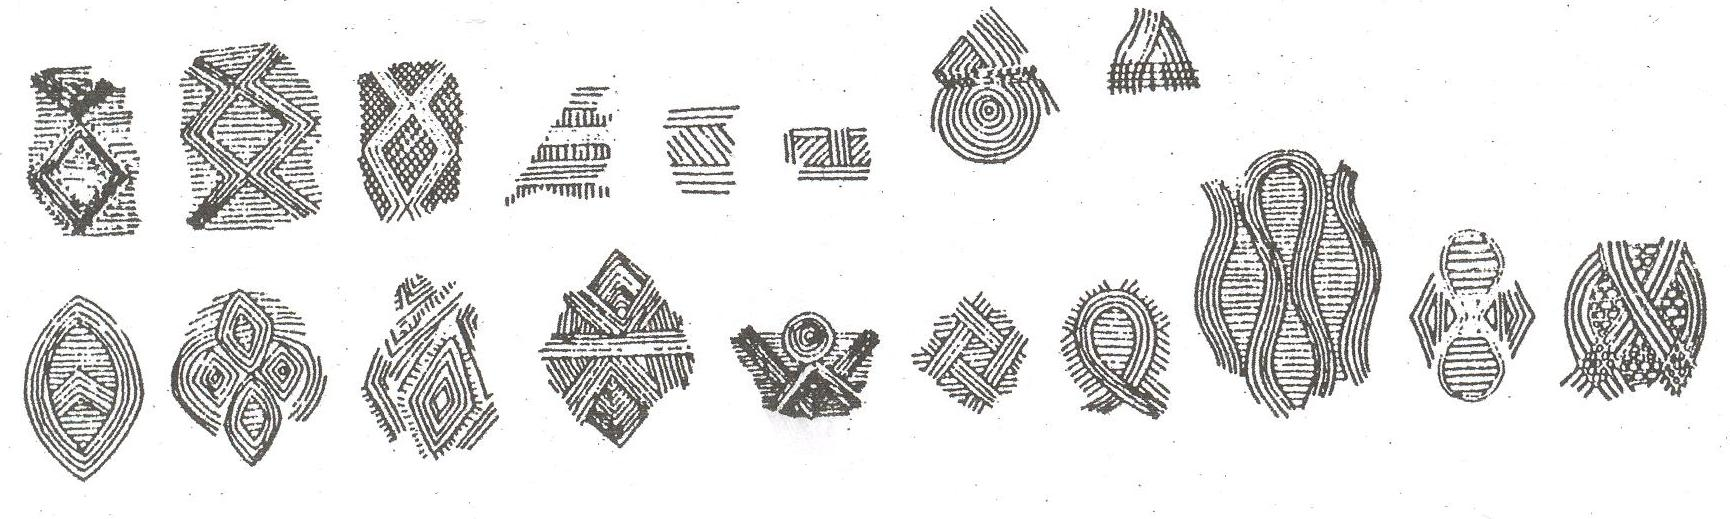 napier stamp forms 001